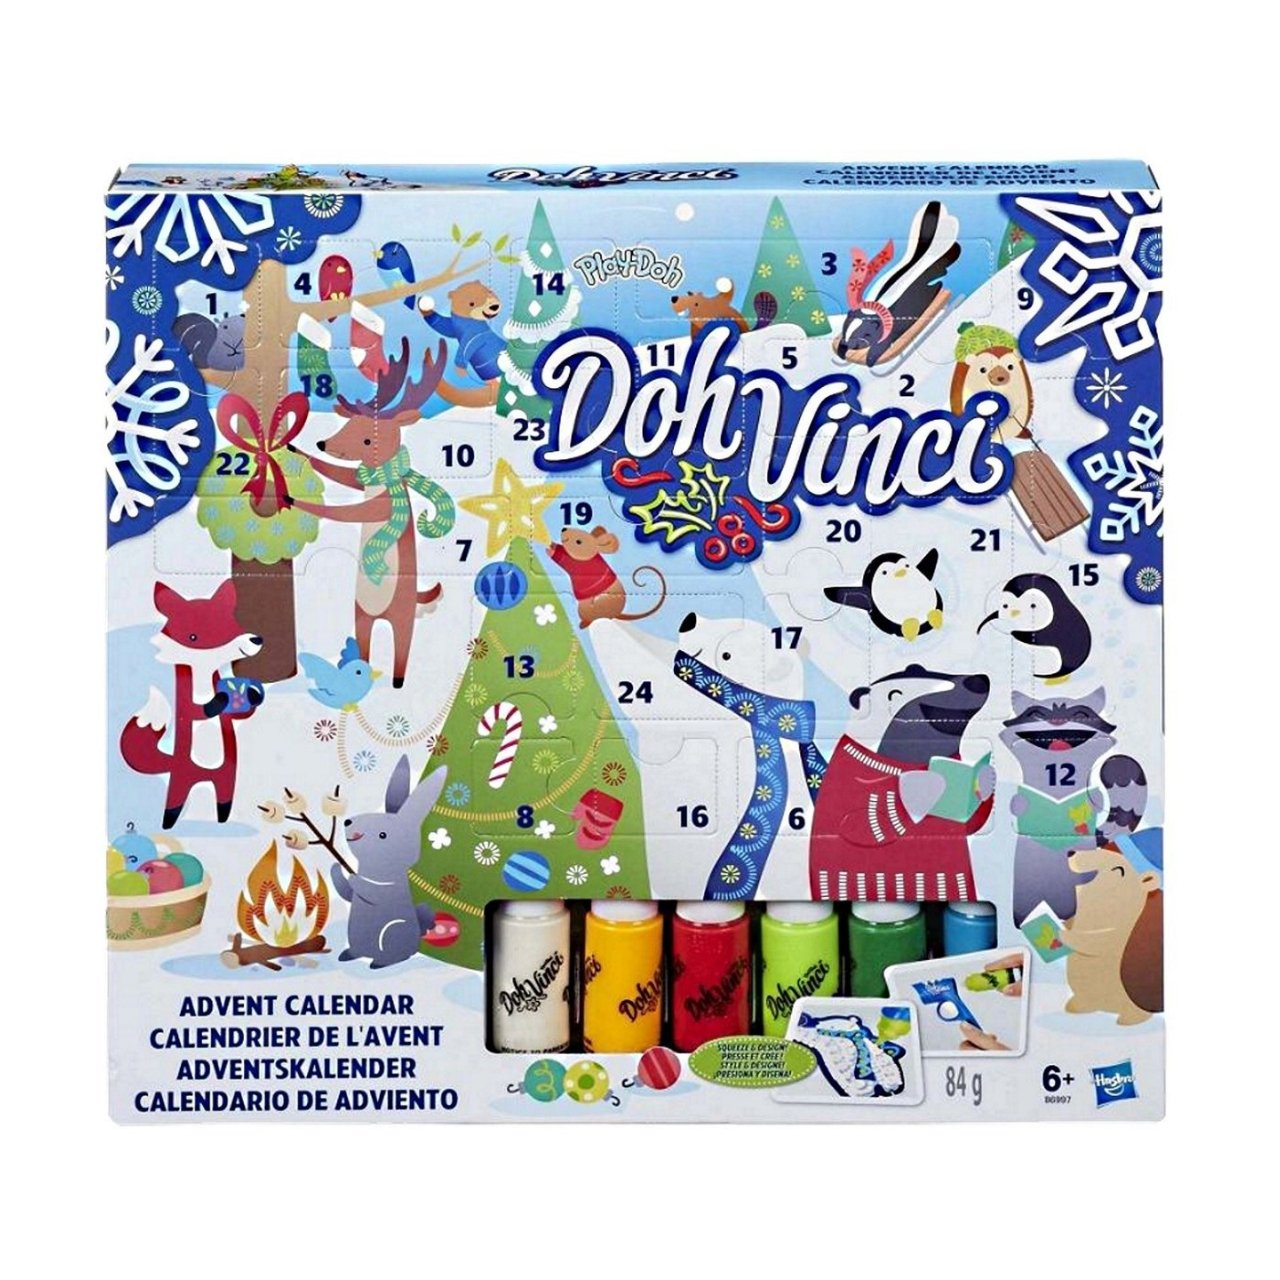 Hasbro Play-Doh Doh Vinci Advent Calendar – Fun Countdown to Christmas, Design and Display in 3D